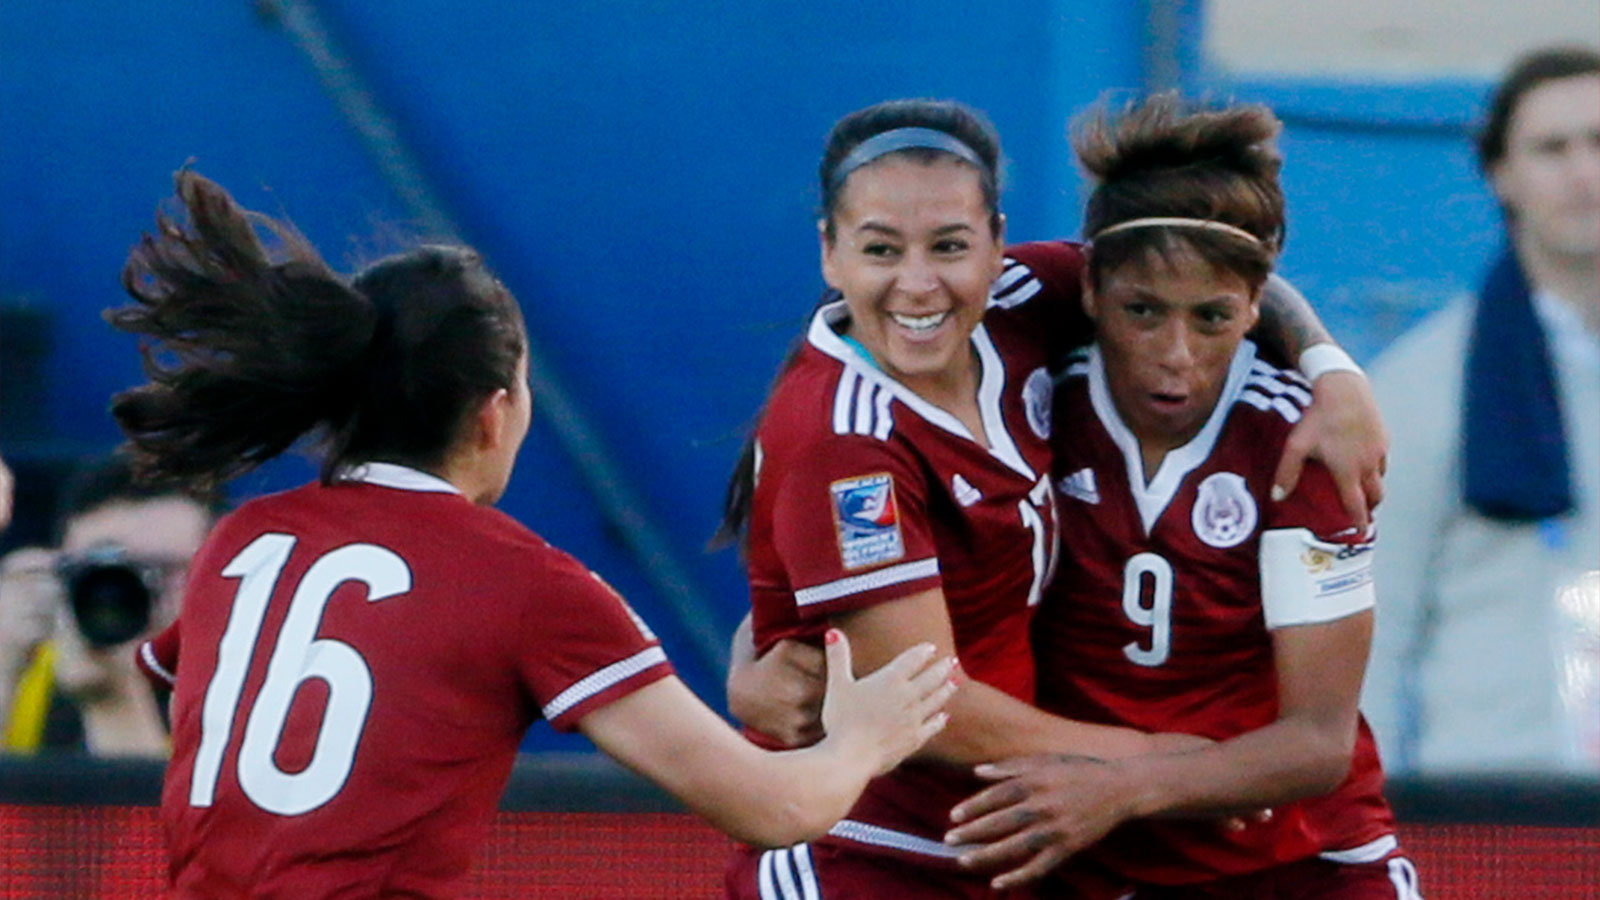 Maribel Dominguez scored a hat trick in Mexico's opening game of Olympic qualifying against Puerto Rico. (AP Photo)